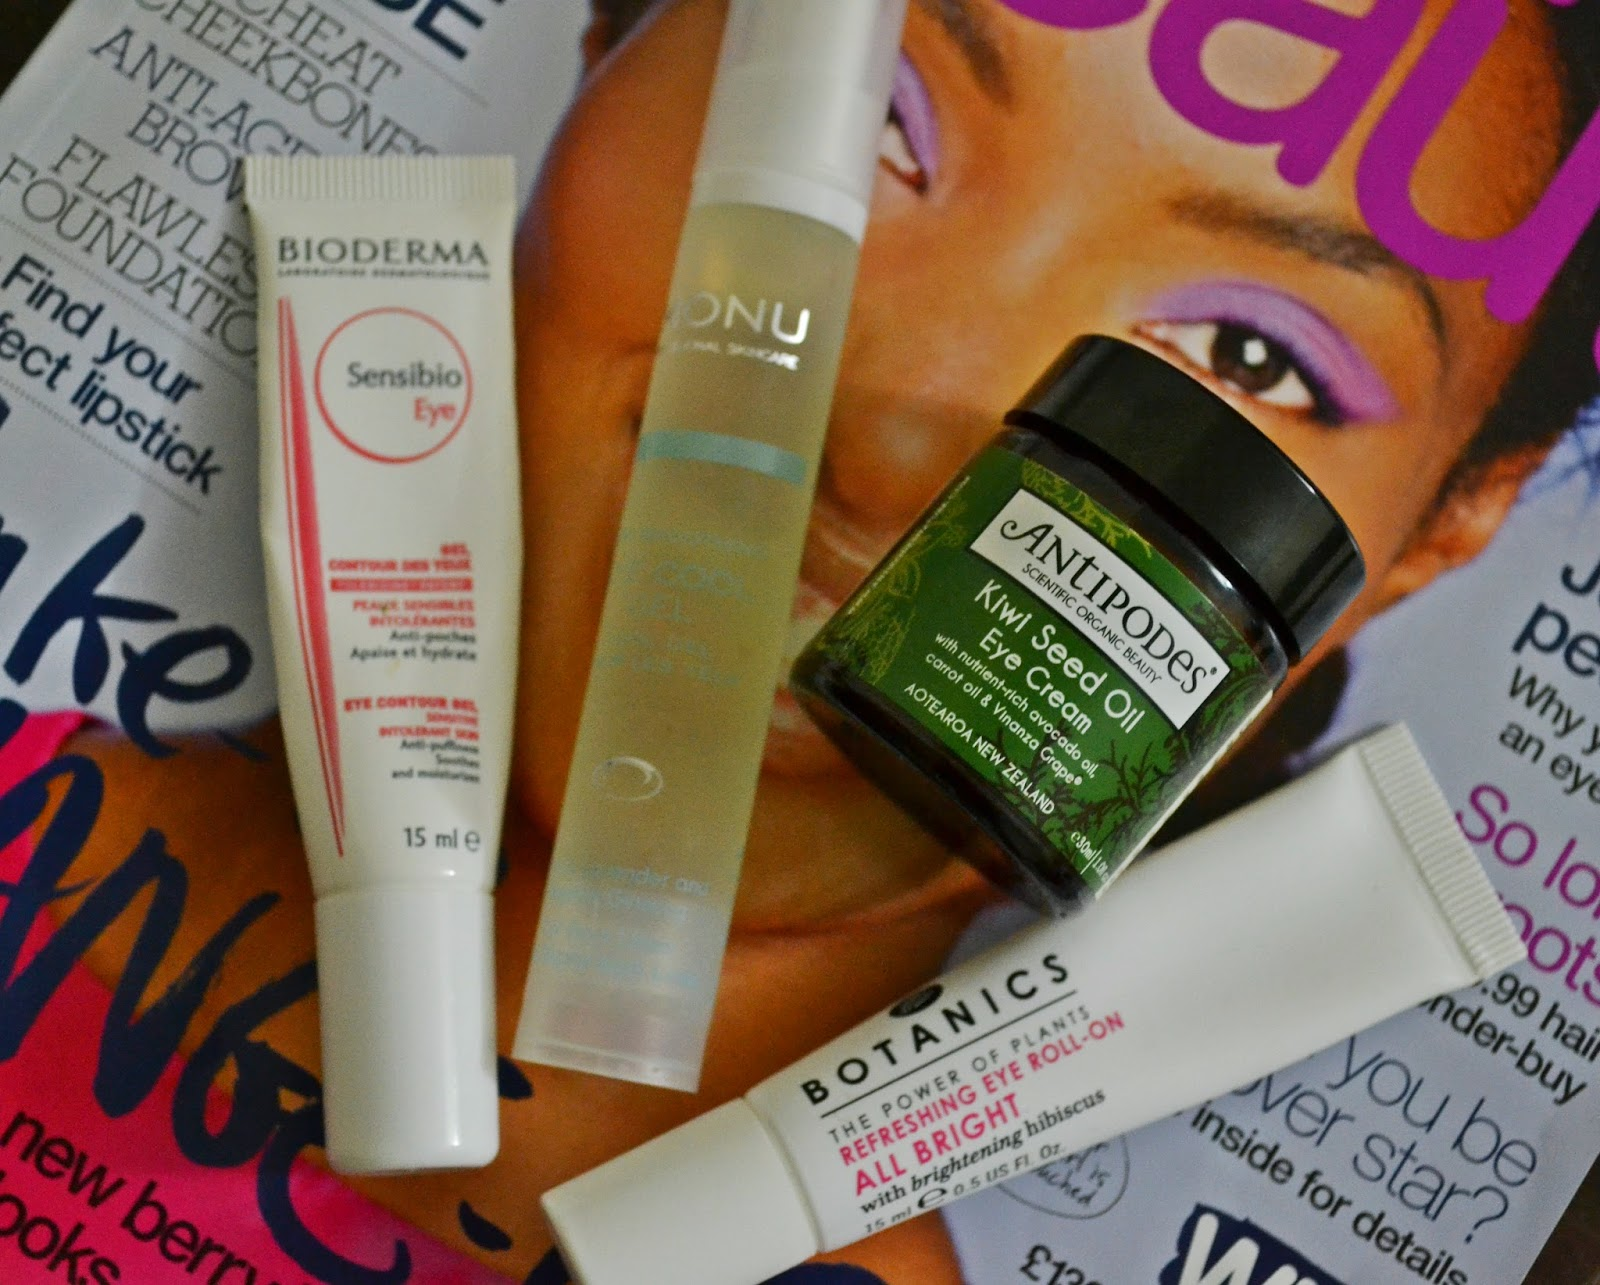 Eye Creams Review featuring Bioderma Sensibio Eye Contour Gel, Monu Professional Skincare Eye Care Gel, Antipodes Kiwi Seed Oil Eye Cream, Boots Botanics Refreshing Eye Roll-On Gel - Aspiring Londoner